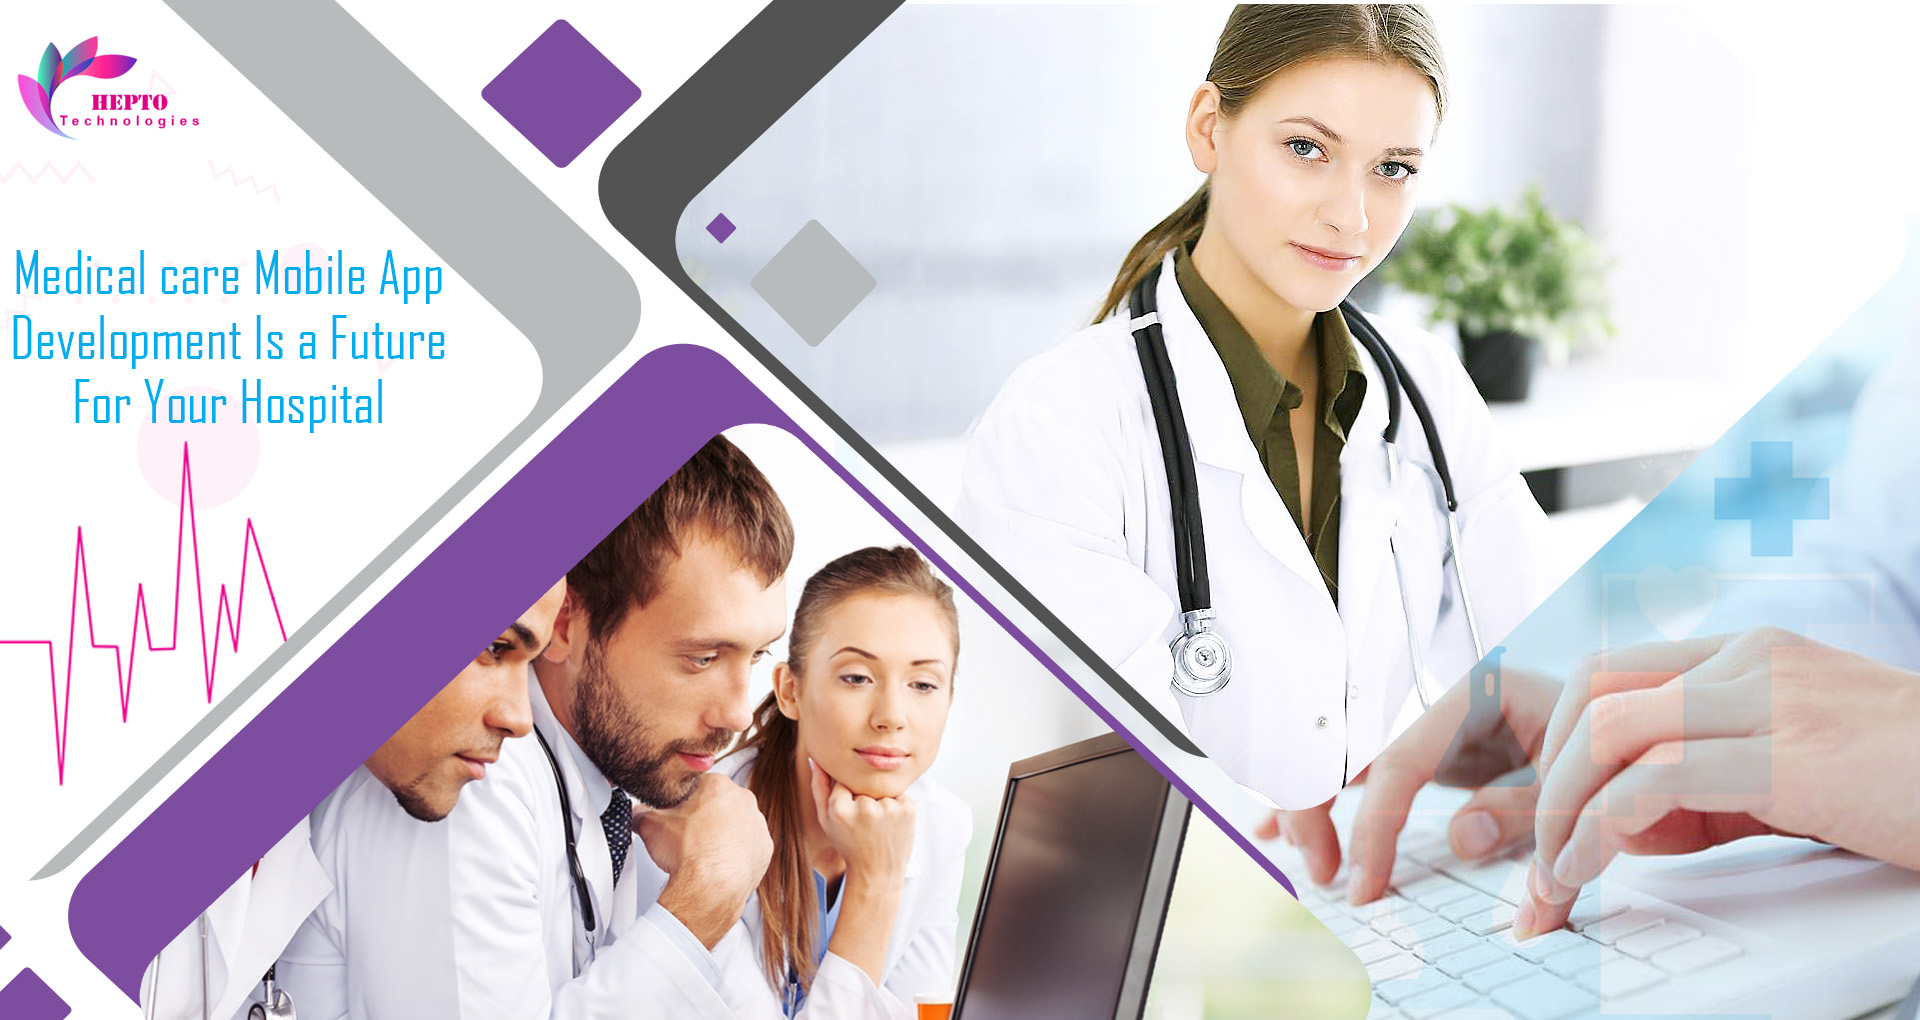 Medical care Mobile App Development Is a Future For Your Hospital